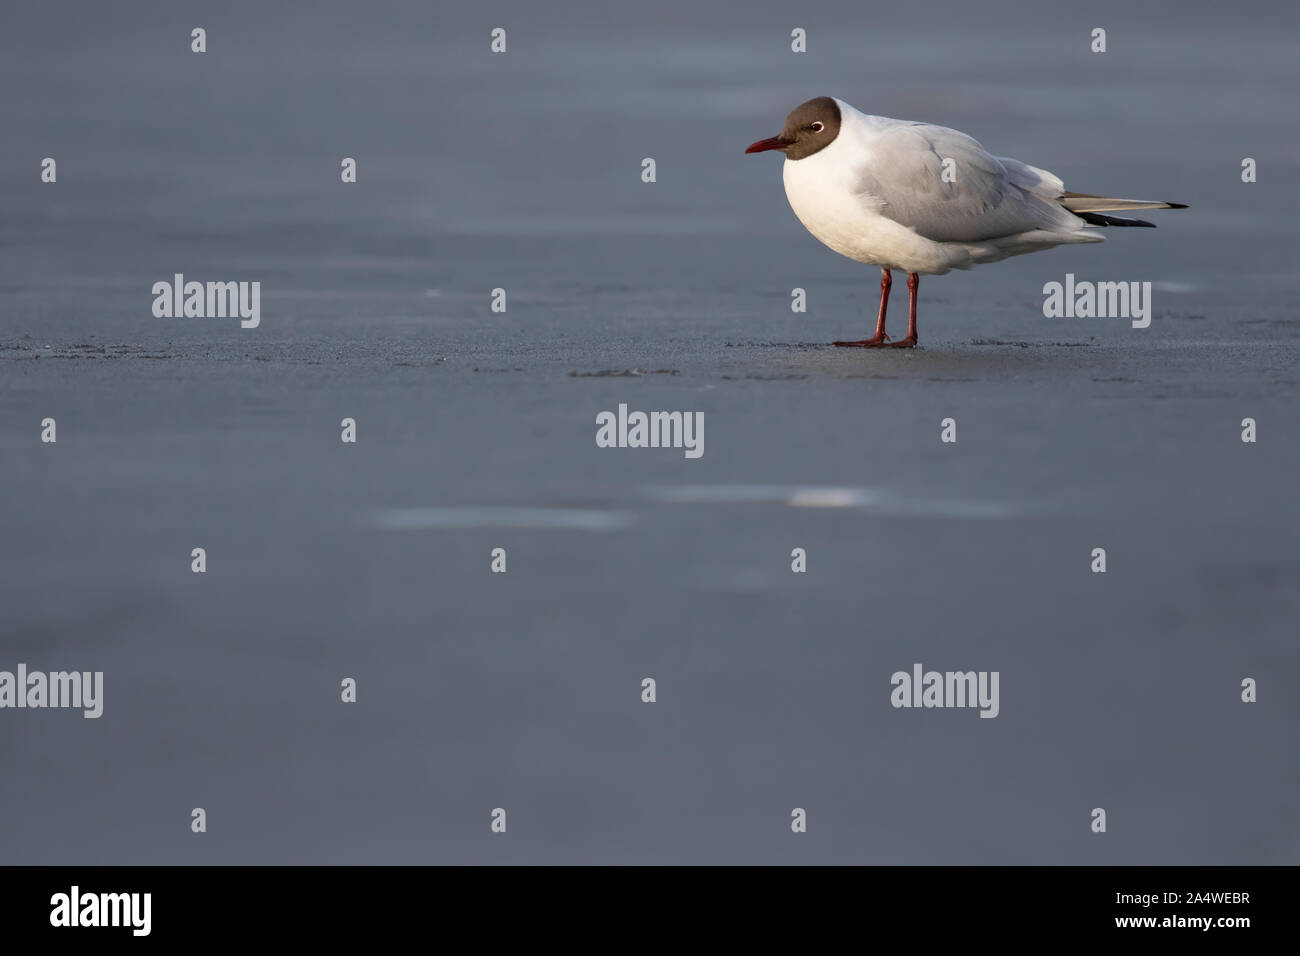 Adult Black-headed Gull (Chroicocephalus ridibundus) standing and resting on the ice on an urban lake in Stockholm, Sweden. Stock Photo